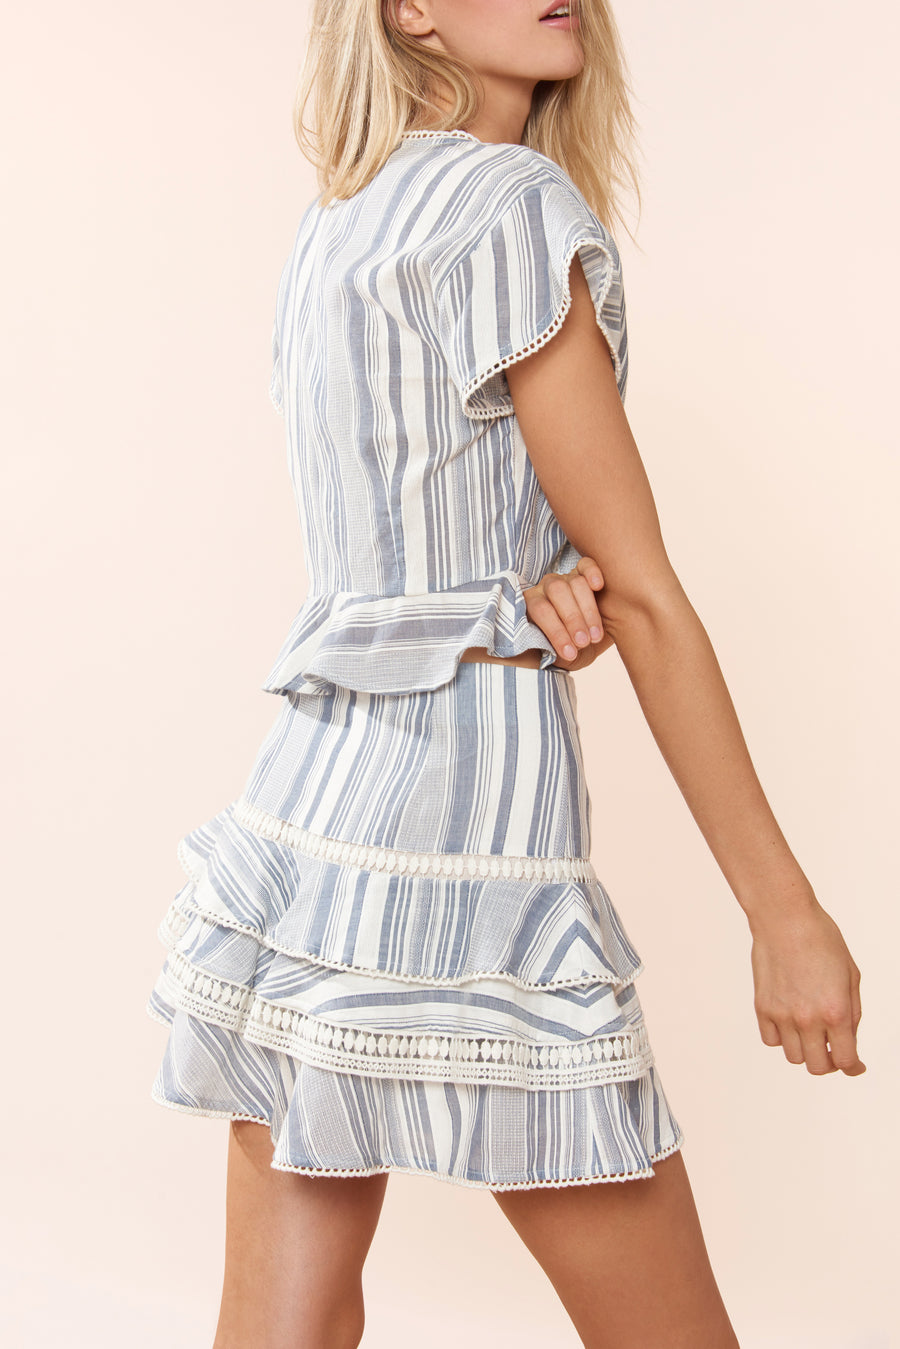 Clara Skirt - Chambray Stripe